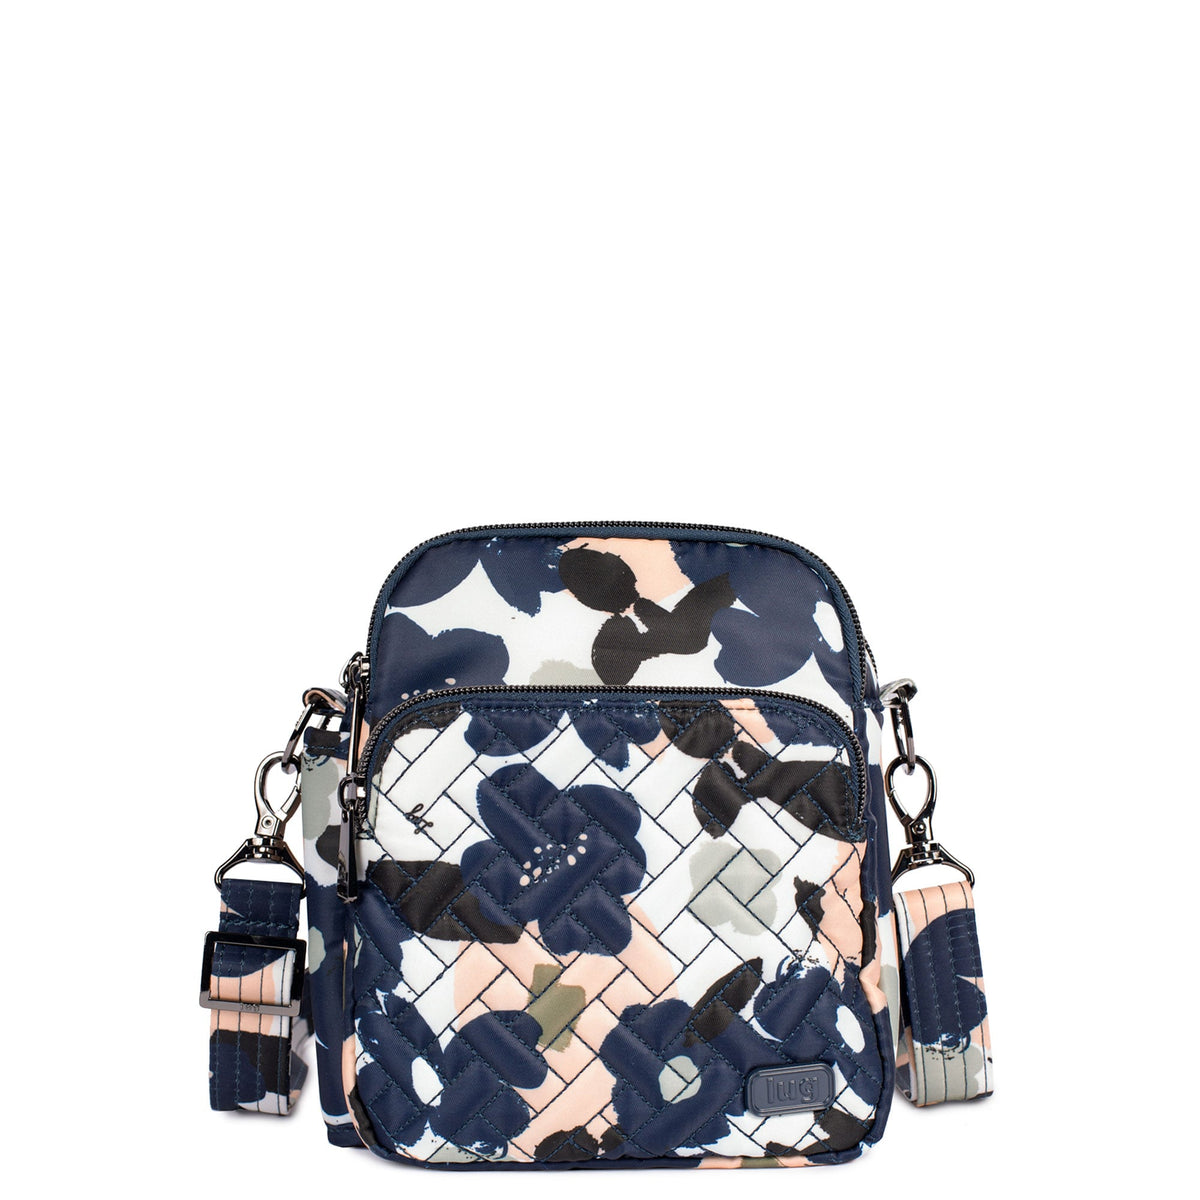 Can Can 2 Convertible Crossbody Bag